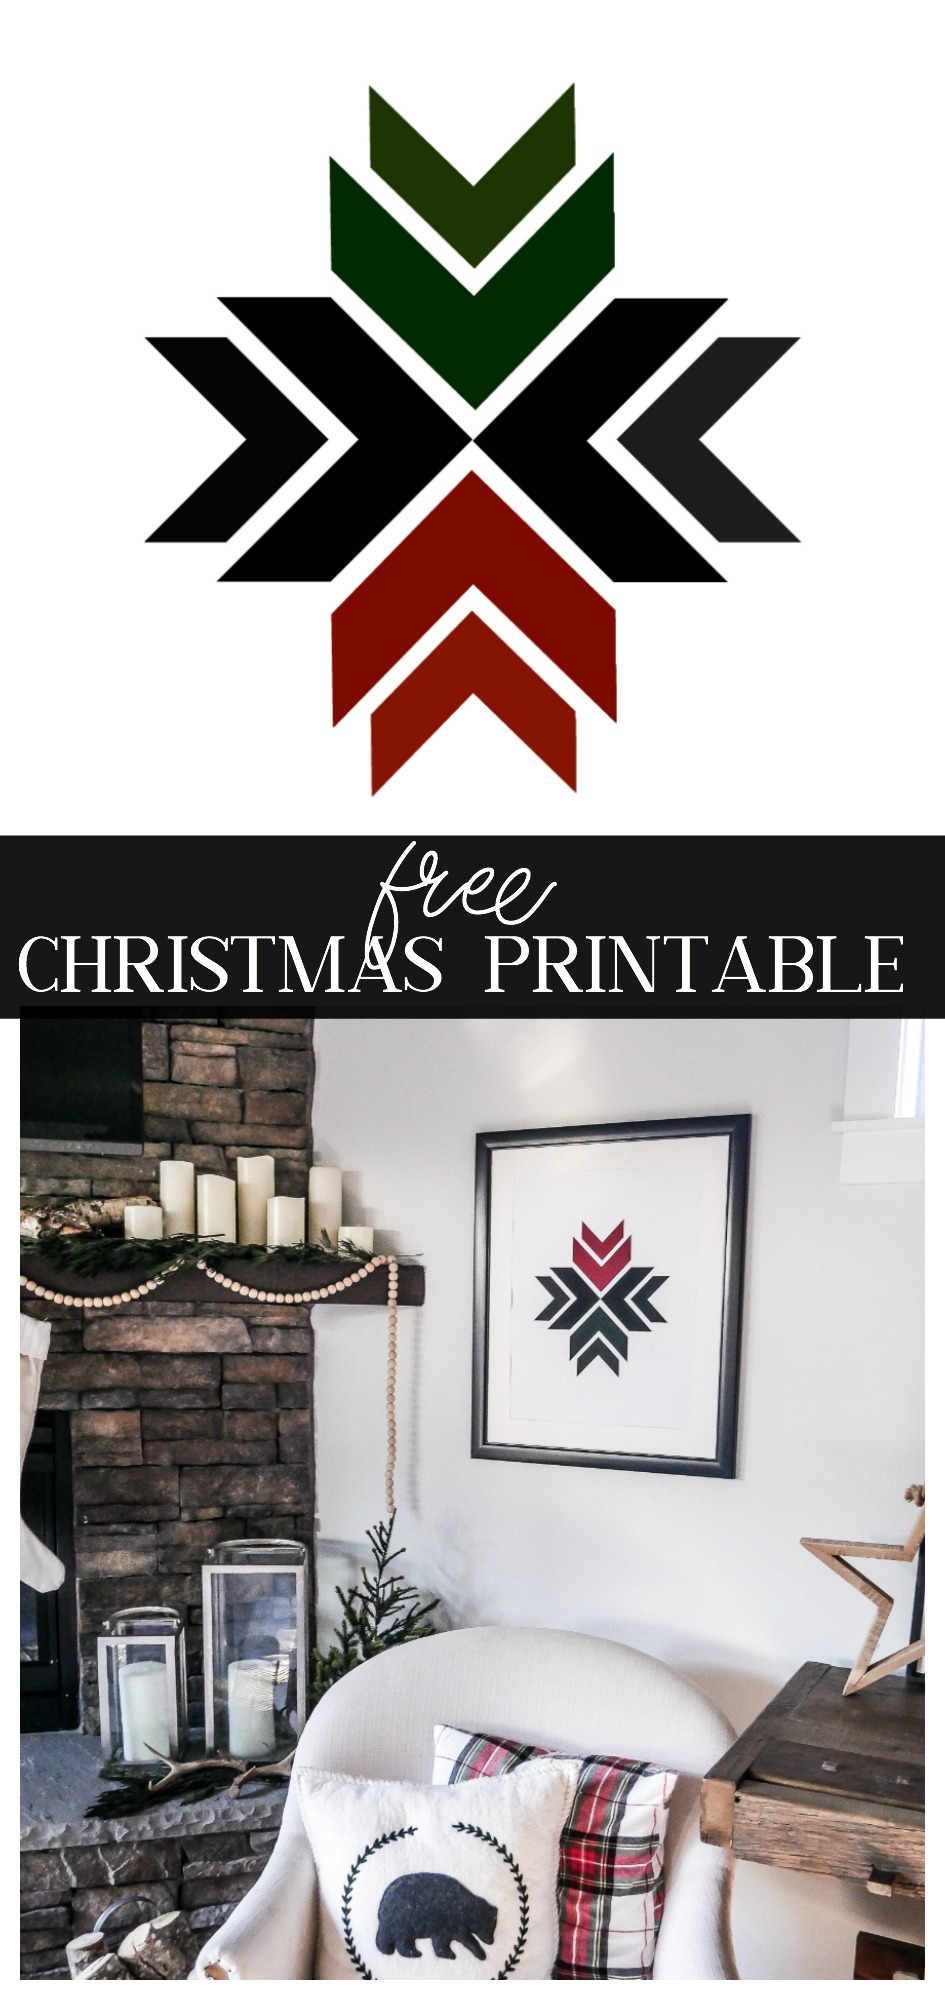 Download your own FREE Copy of this Geometric Christmas Printable! This modern Christmas art is black and white with subtle pops of red and green.